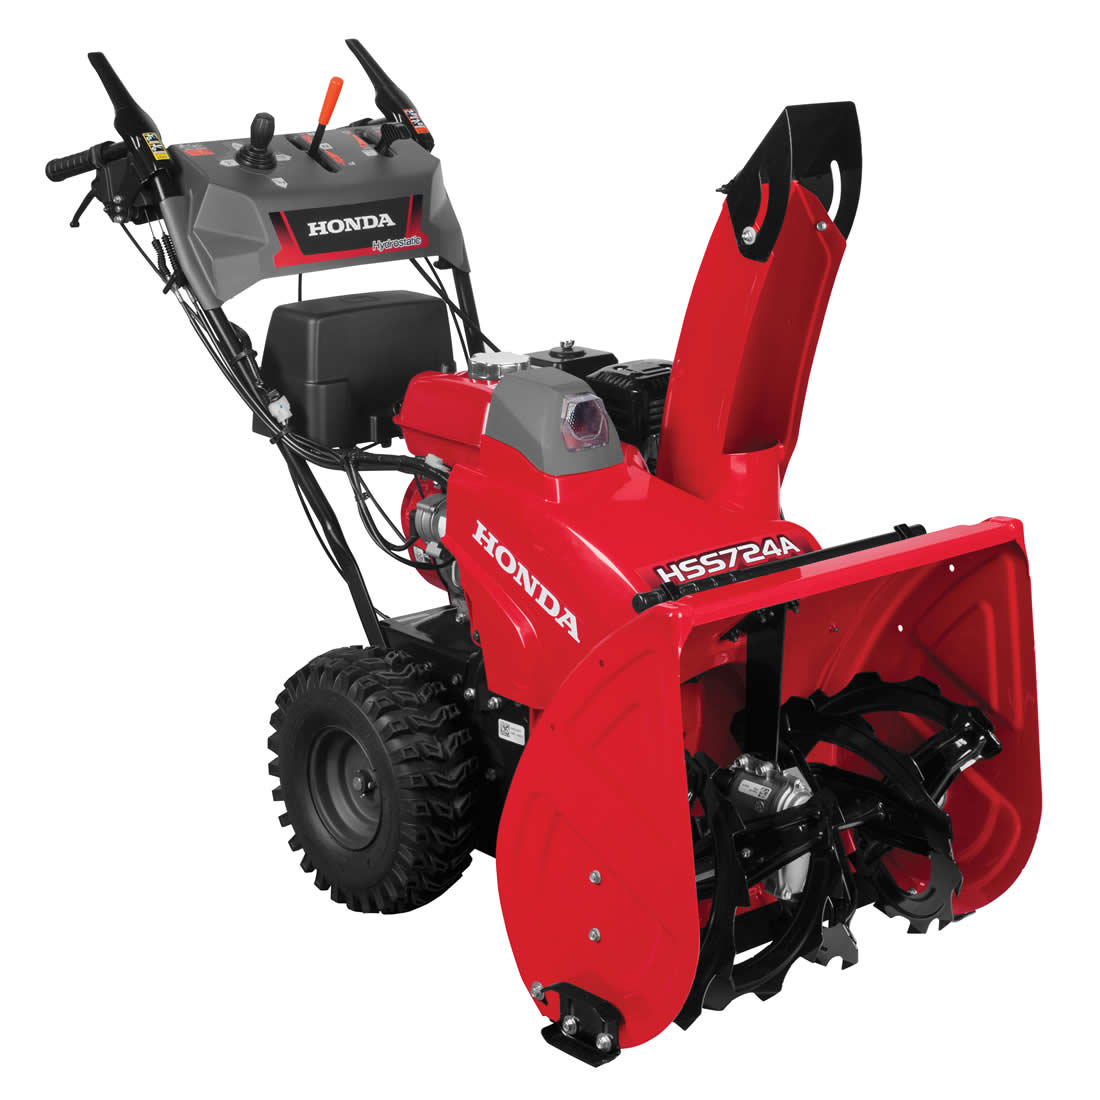 2016 Honda Power Equipment HSS724AWD in Aurora, Illinois